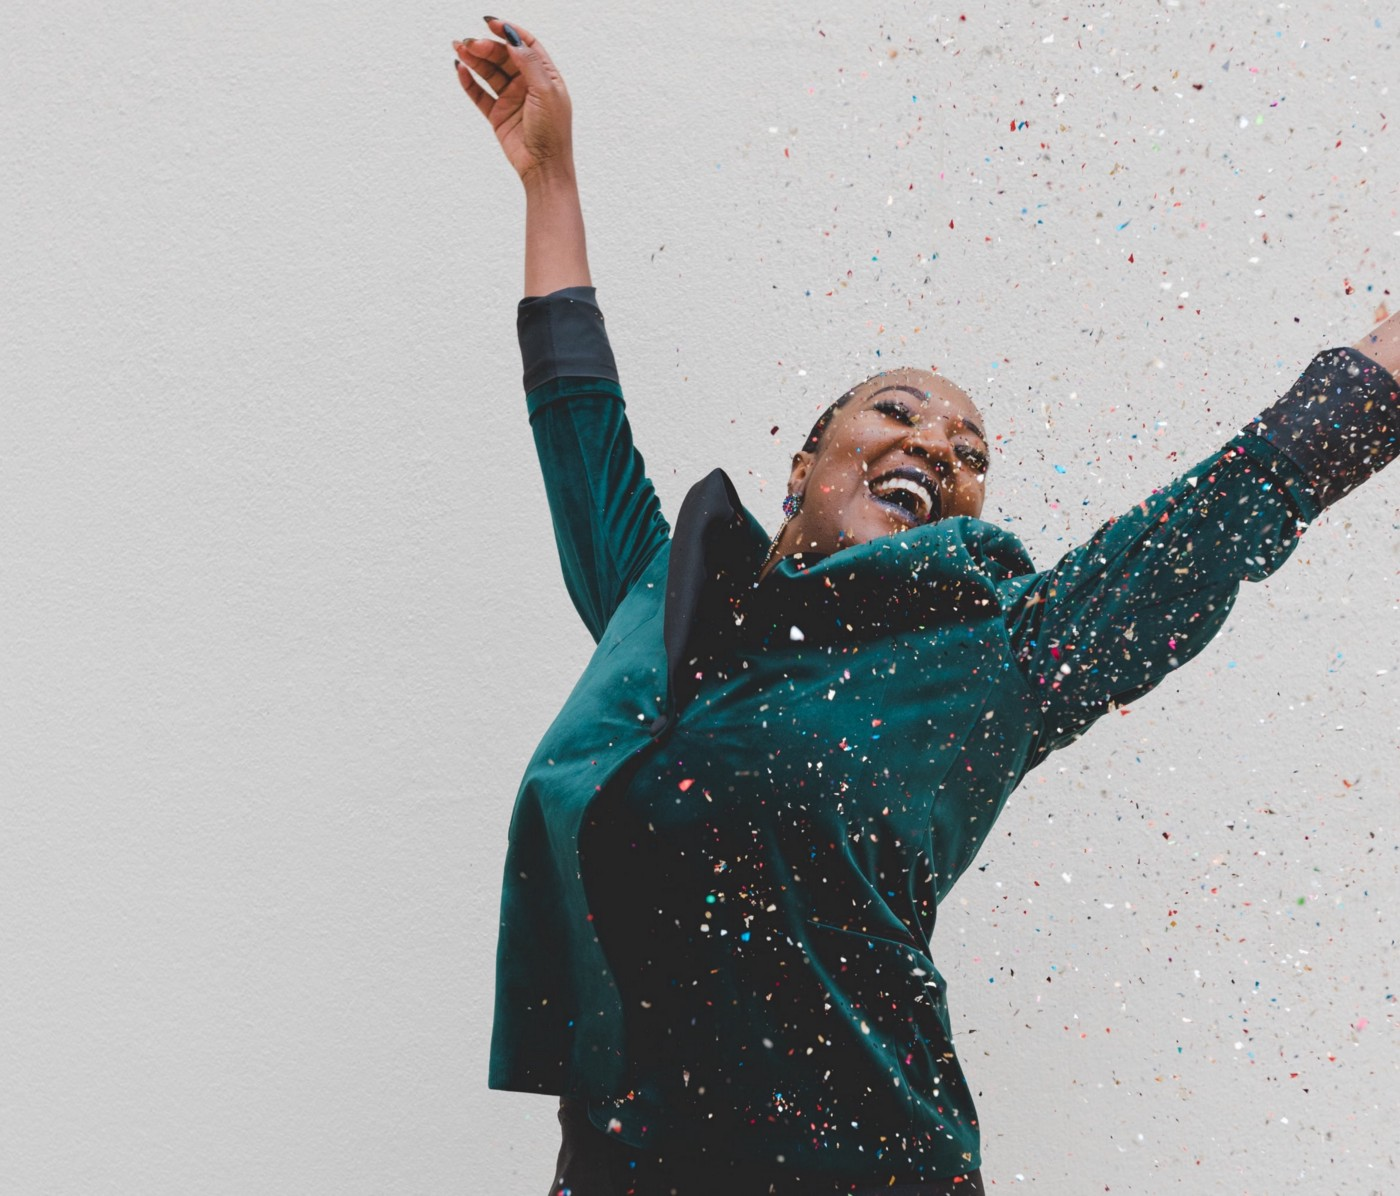 woman jumping for joy with confetti